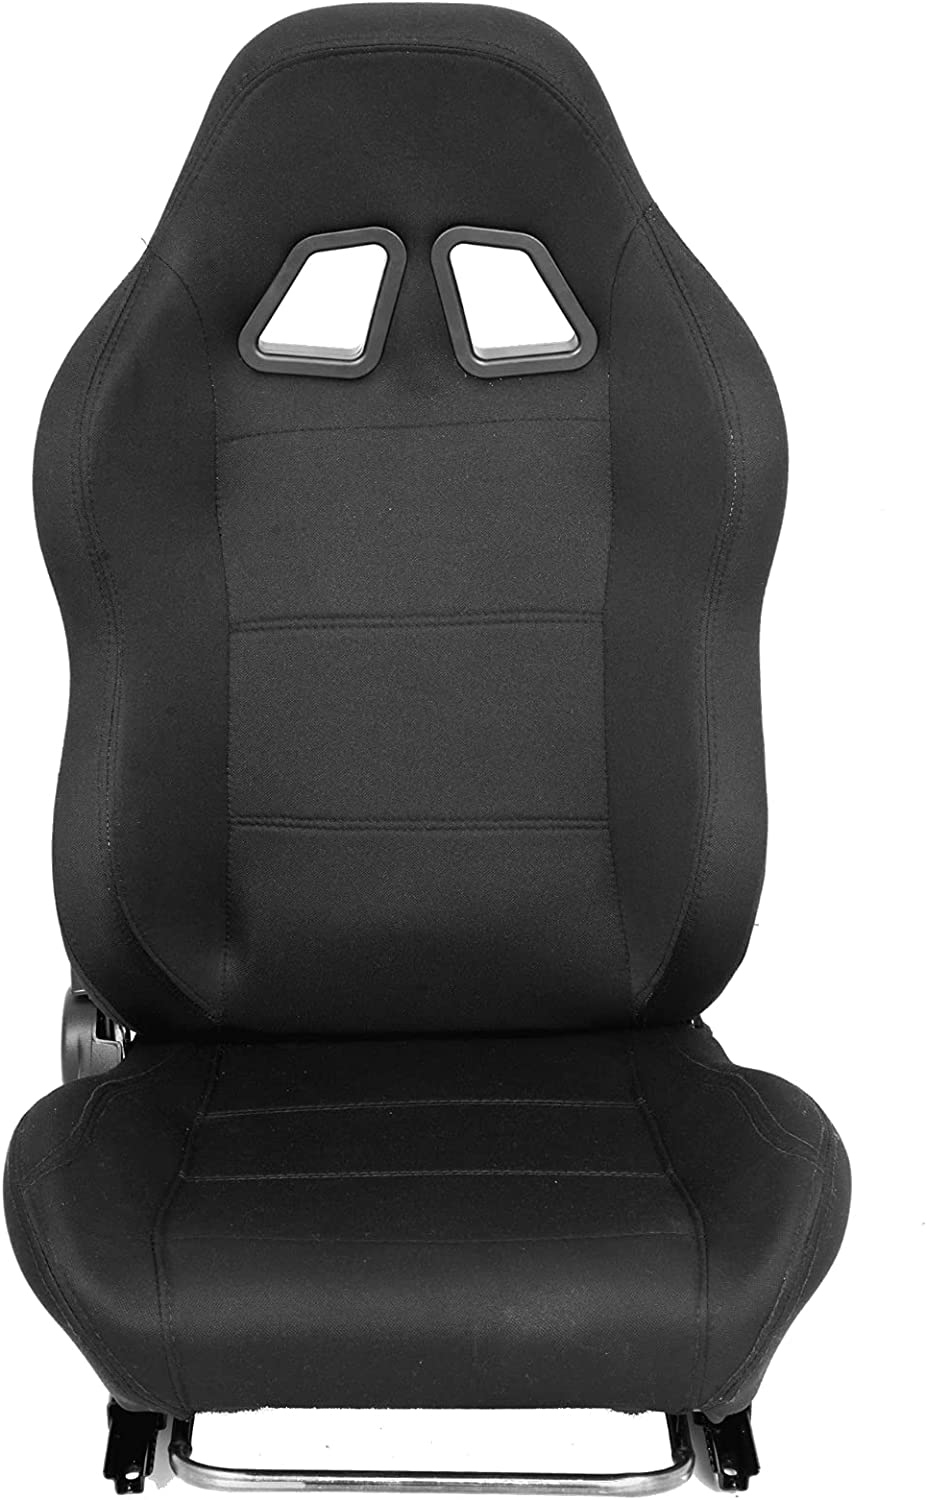 Hottoby Racing Seat With Adjustable Slide Adapt Si Brand Austin Mall new Double